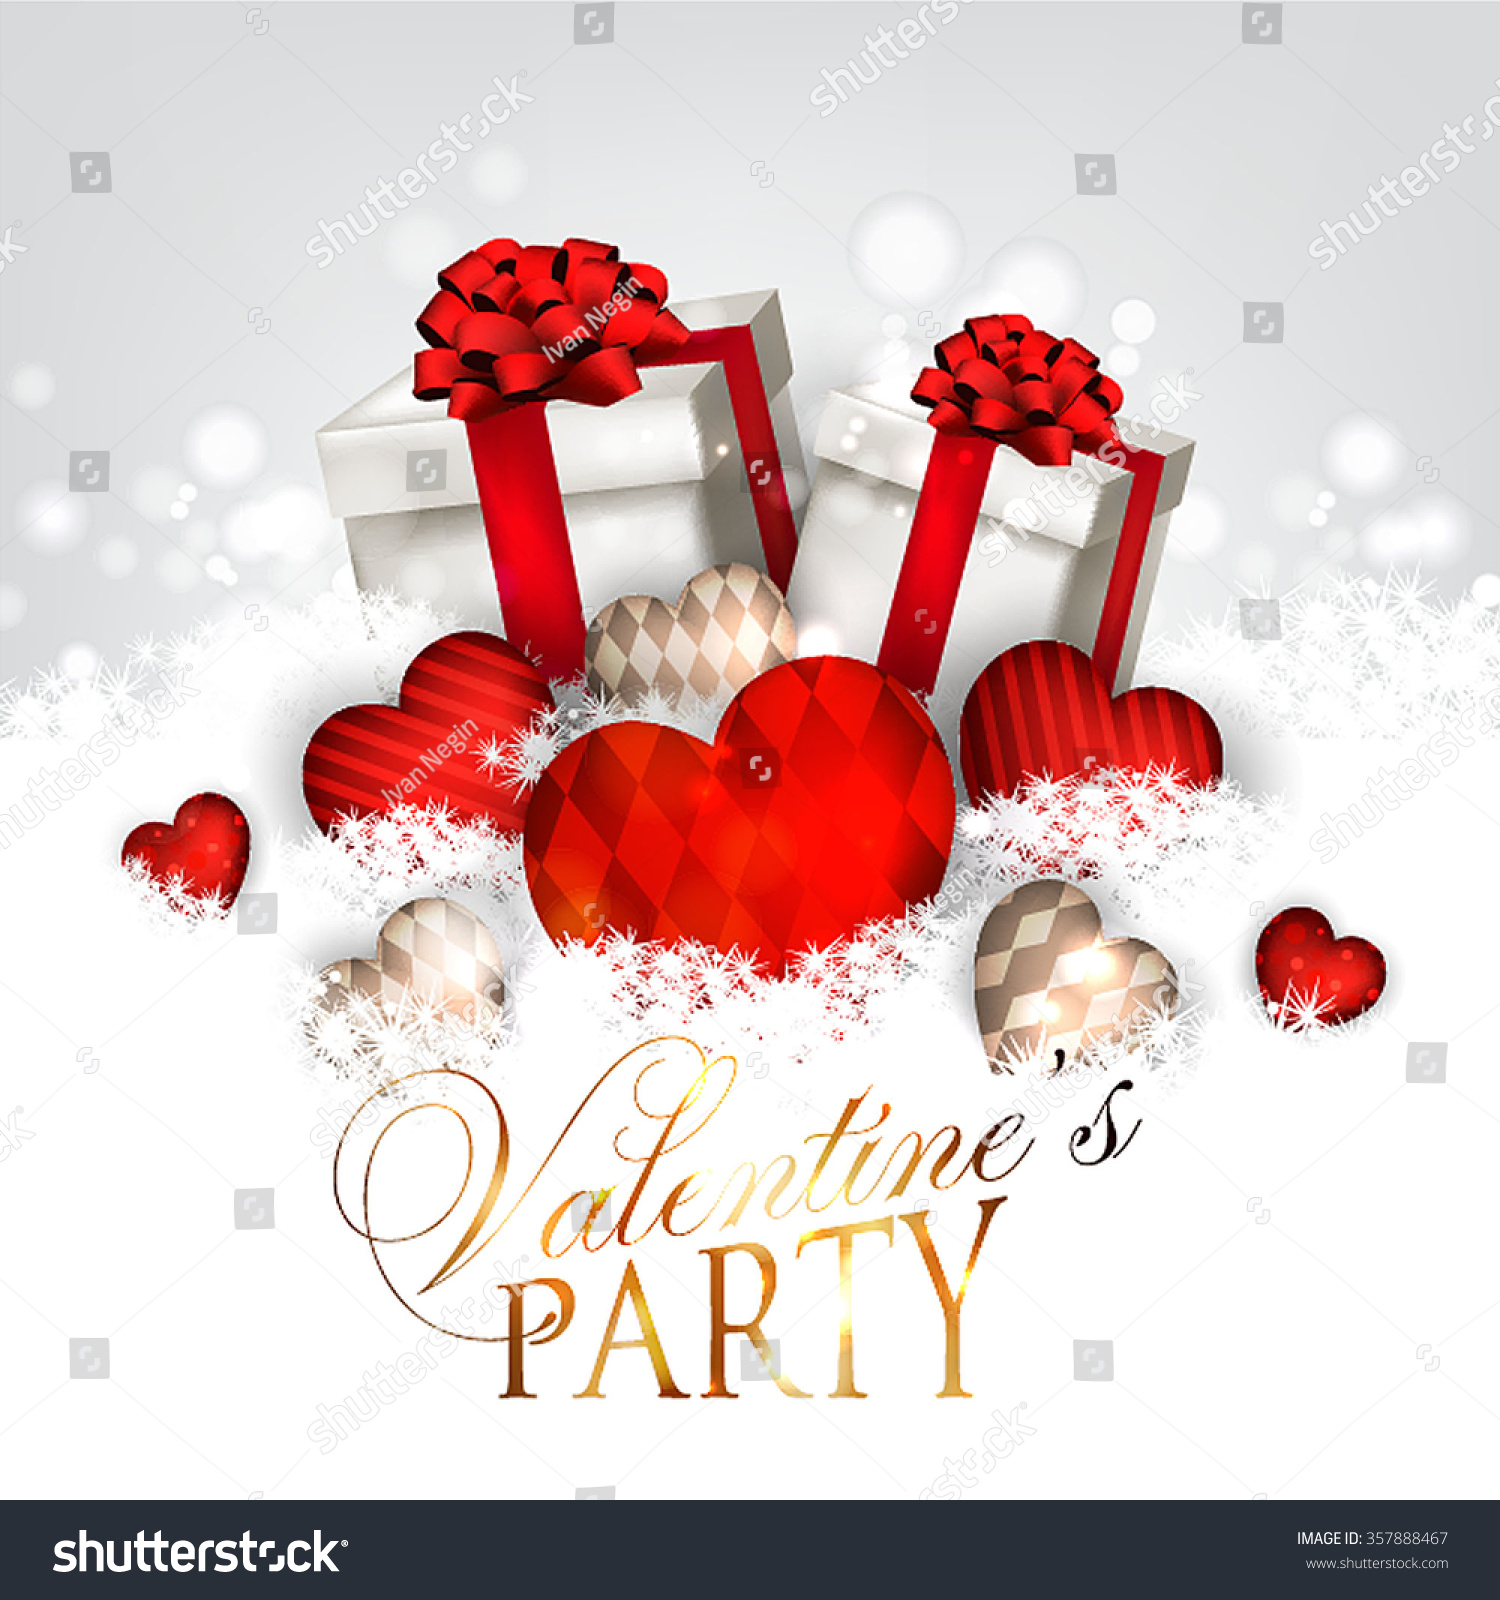 Valentines Day Party Invitation Gift Box Stock Vector 357888467 ...